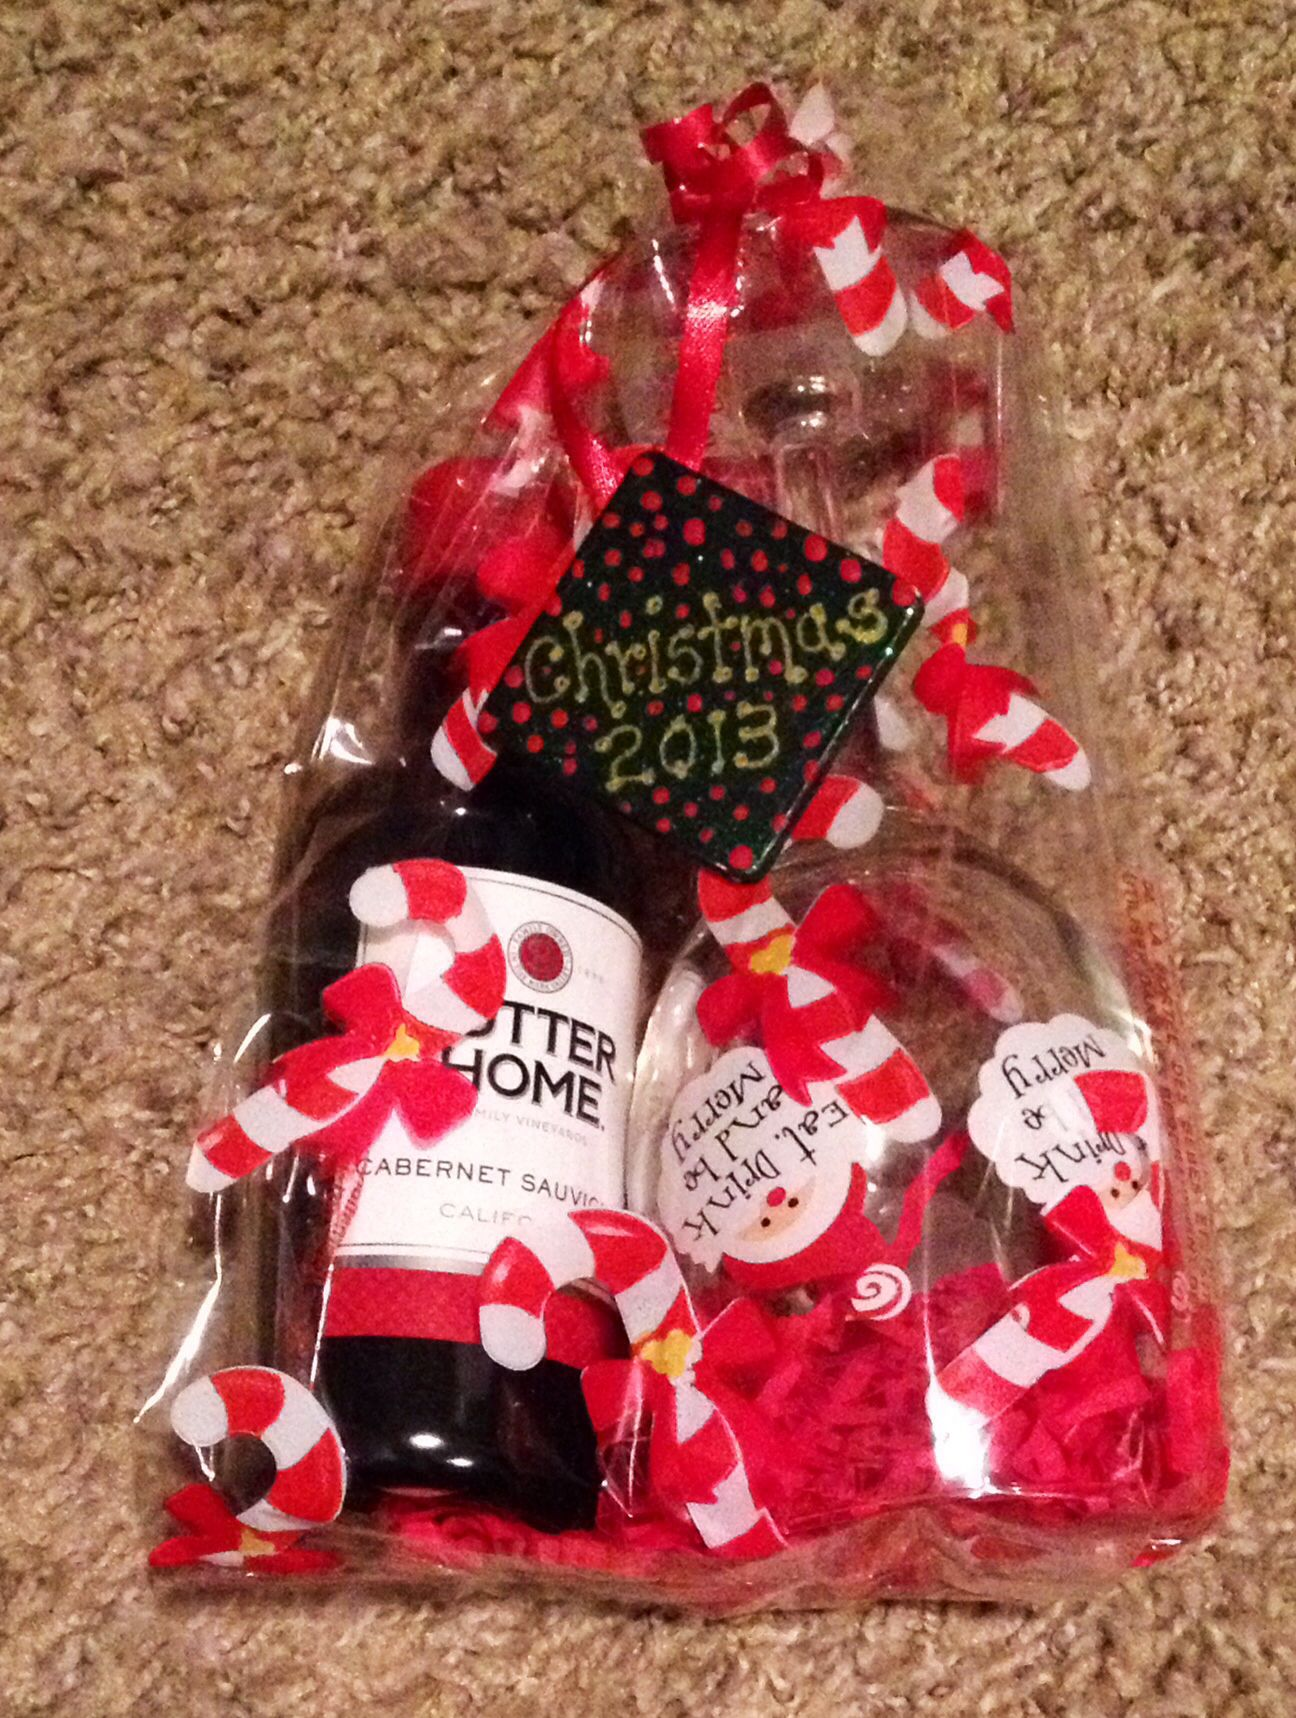 Christmas Employee Gifts Wine Glass Dollar Store Sutter Home Individual Wine Employee Christmas Gifts Diy Christmas Gifts Diy Christmas Gifts For Coworkers